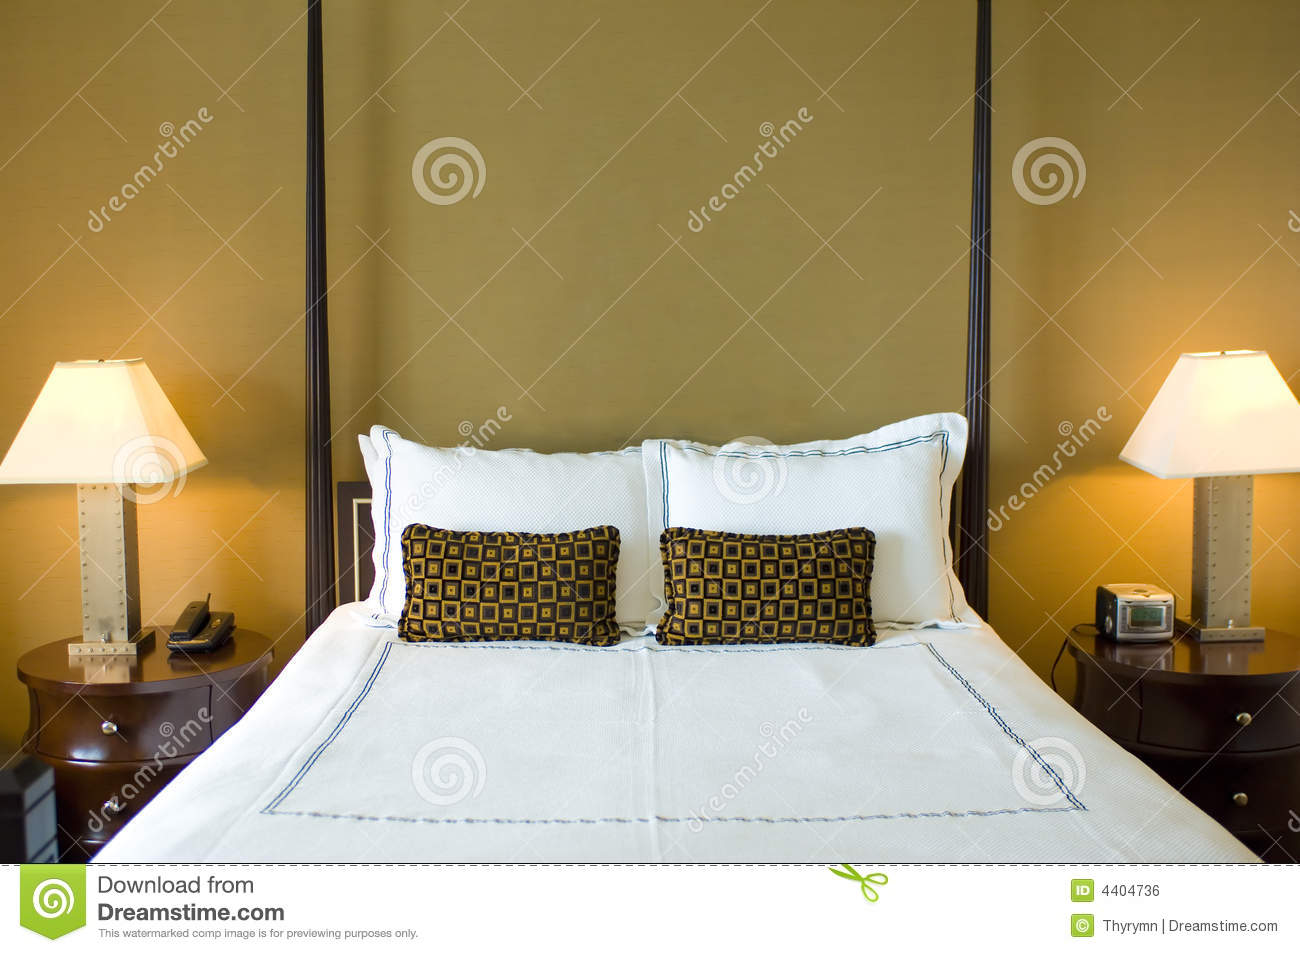 Bedroom royalty free stock image image 4404736 - Beautiful snooze bedroom suites packing comfort in style ...